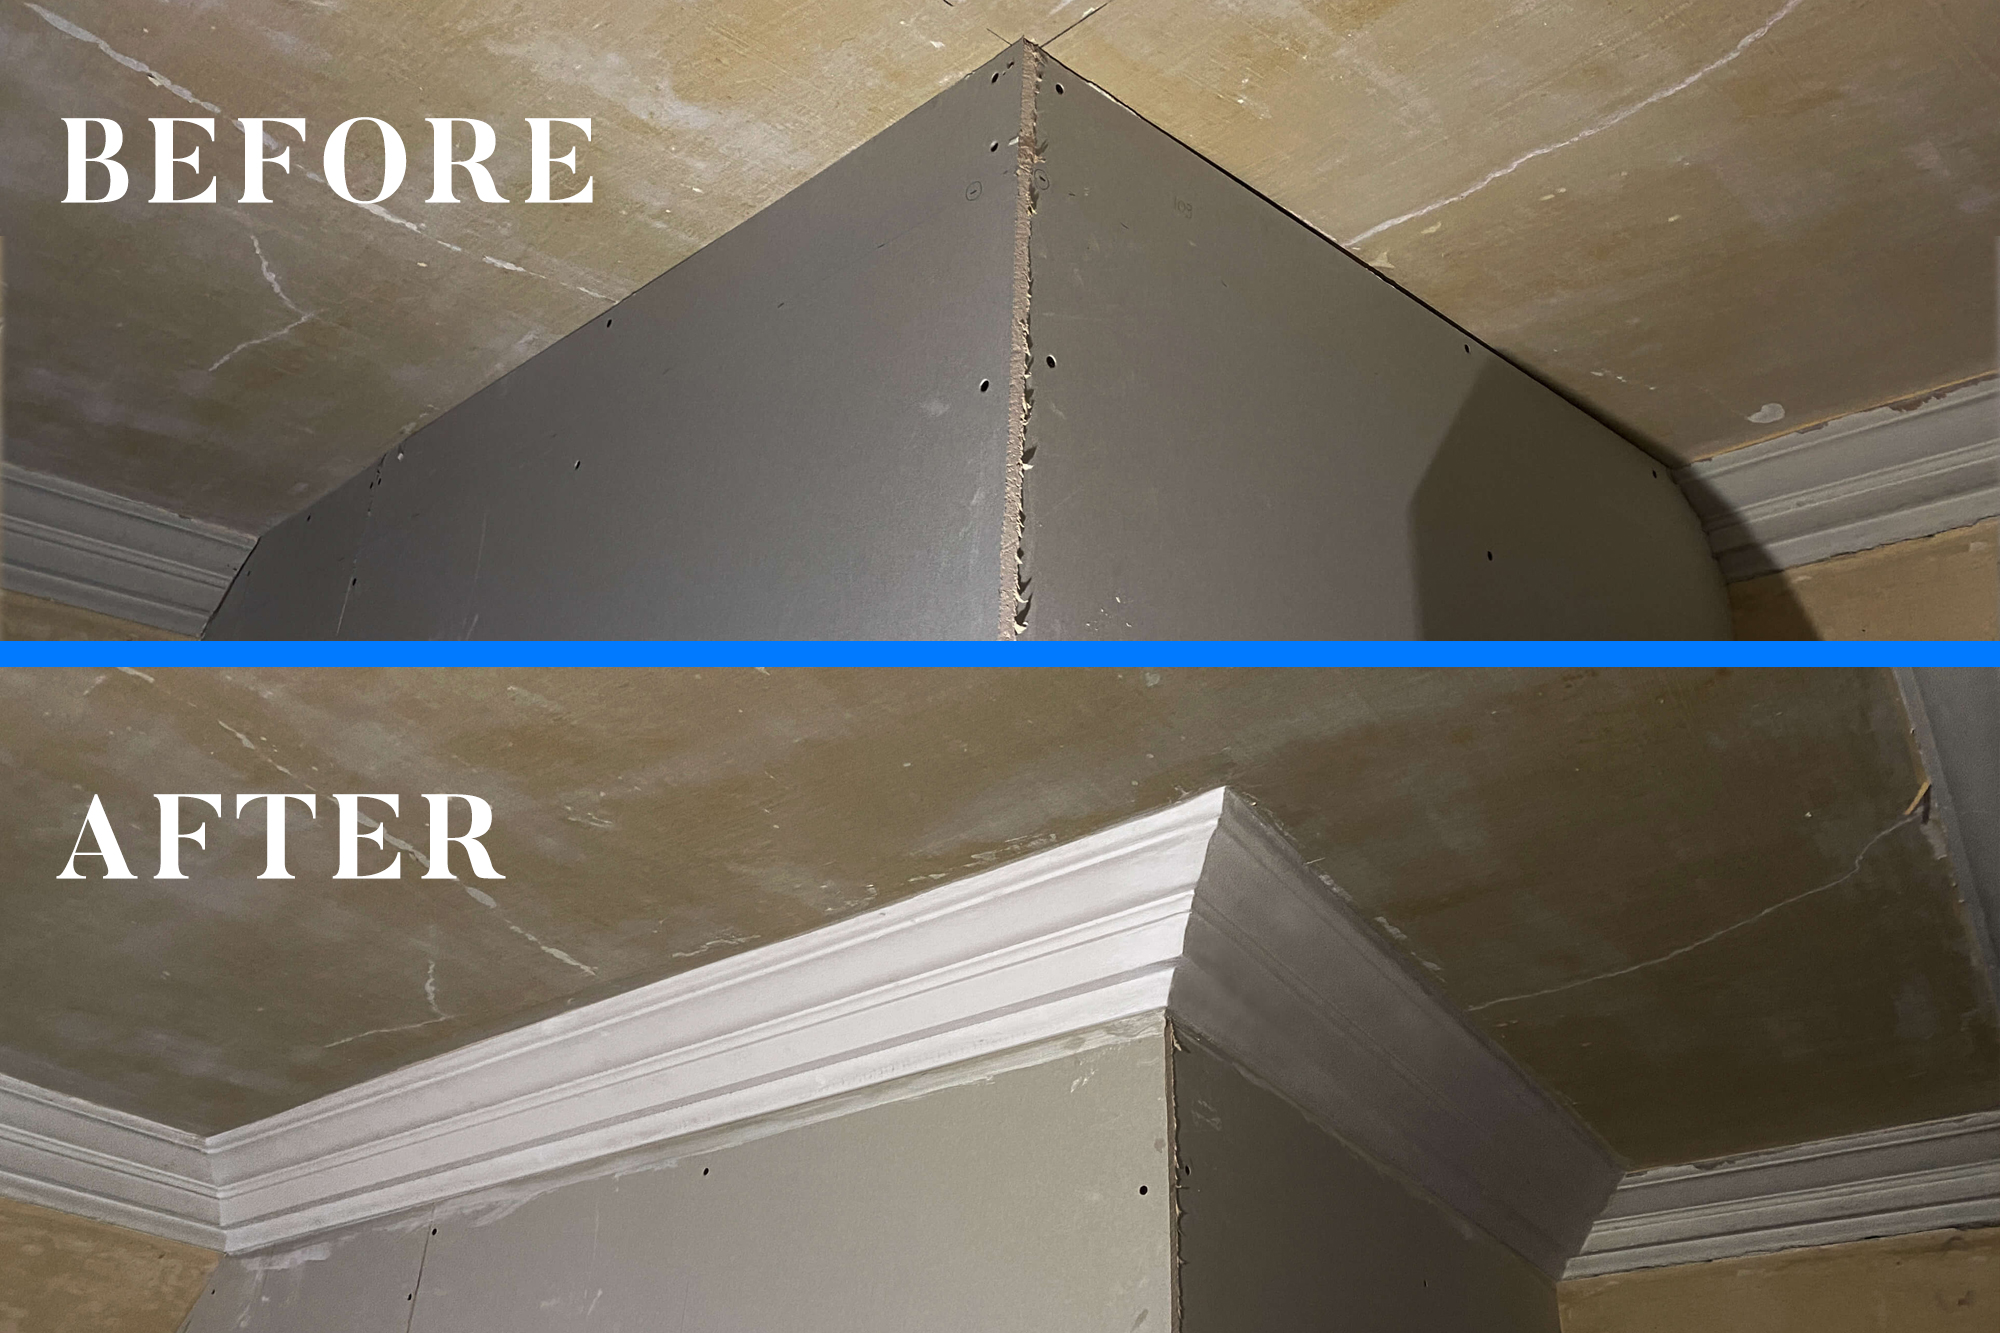 Link to Decorative cornice fitting in Bishopbriggs, Glasgow